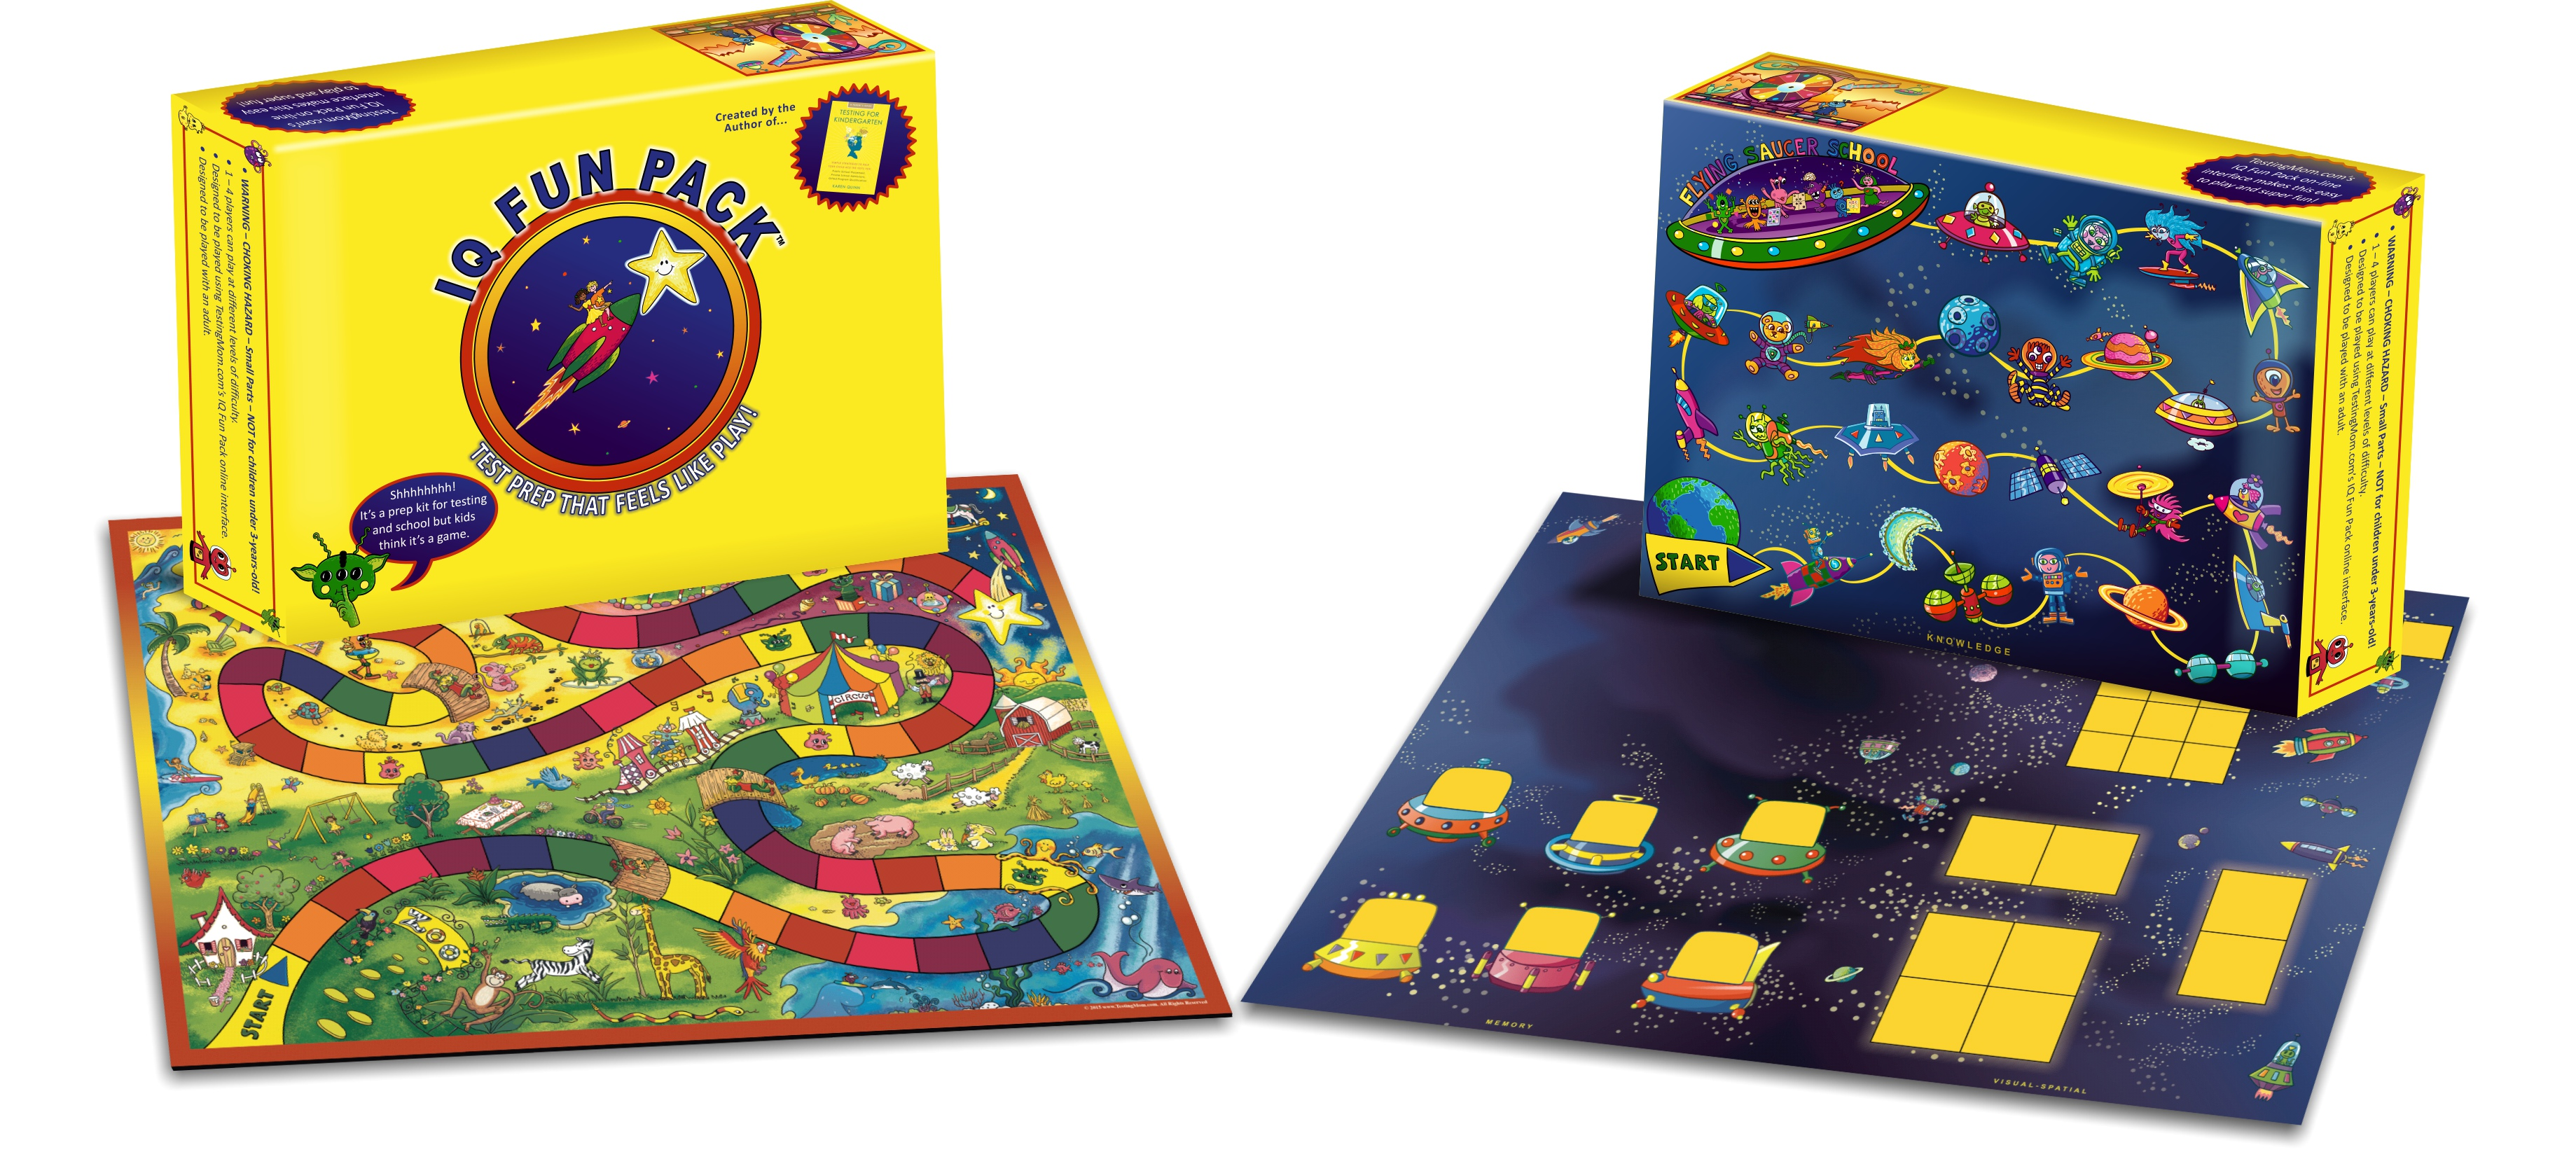 Iq fun pack test prep system that feels like play for ages 3 8 use coupon code funpack99 to purchase the iq fun pack for only 99 limited time only fandeluxe Choice Image